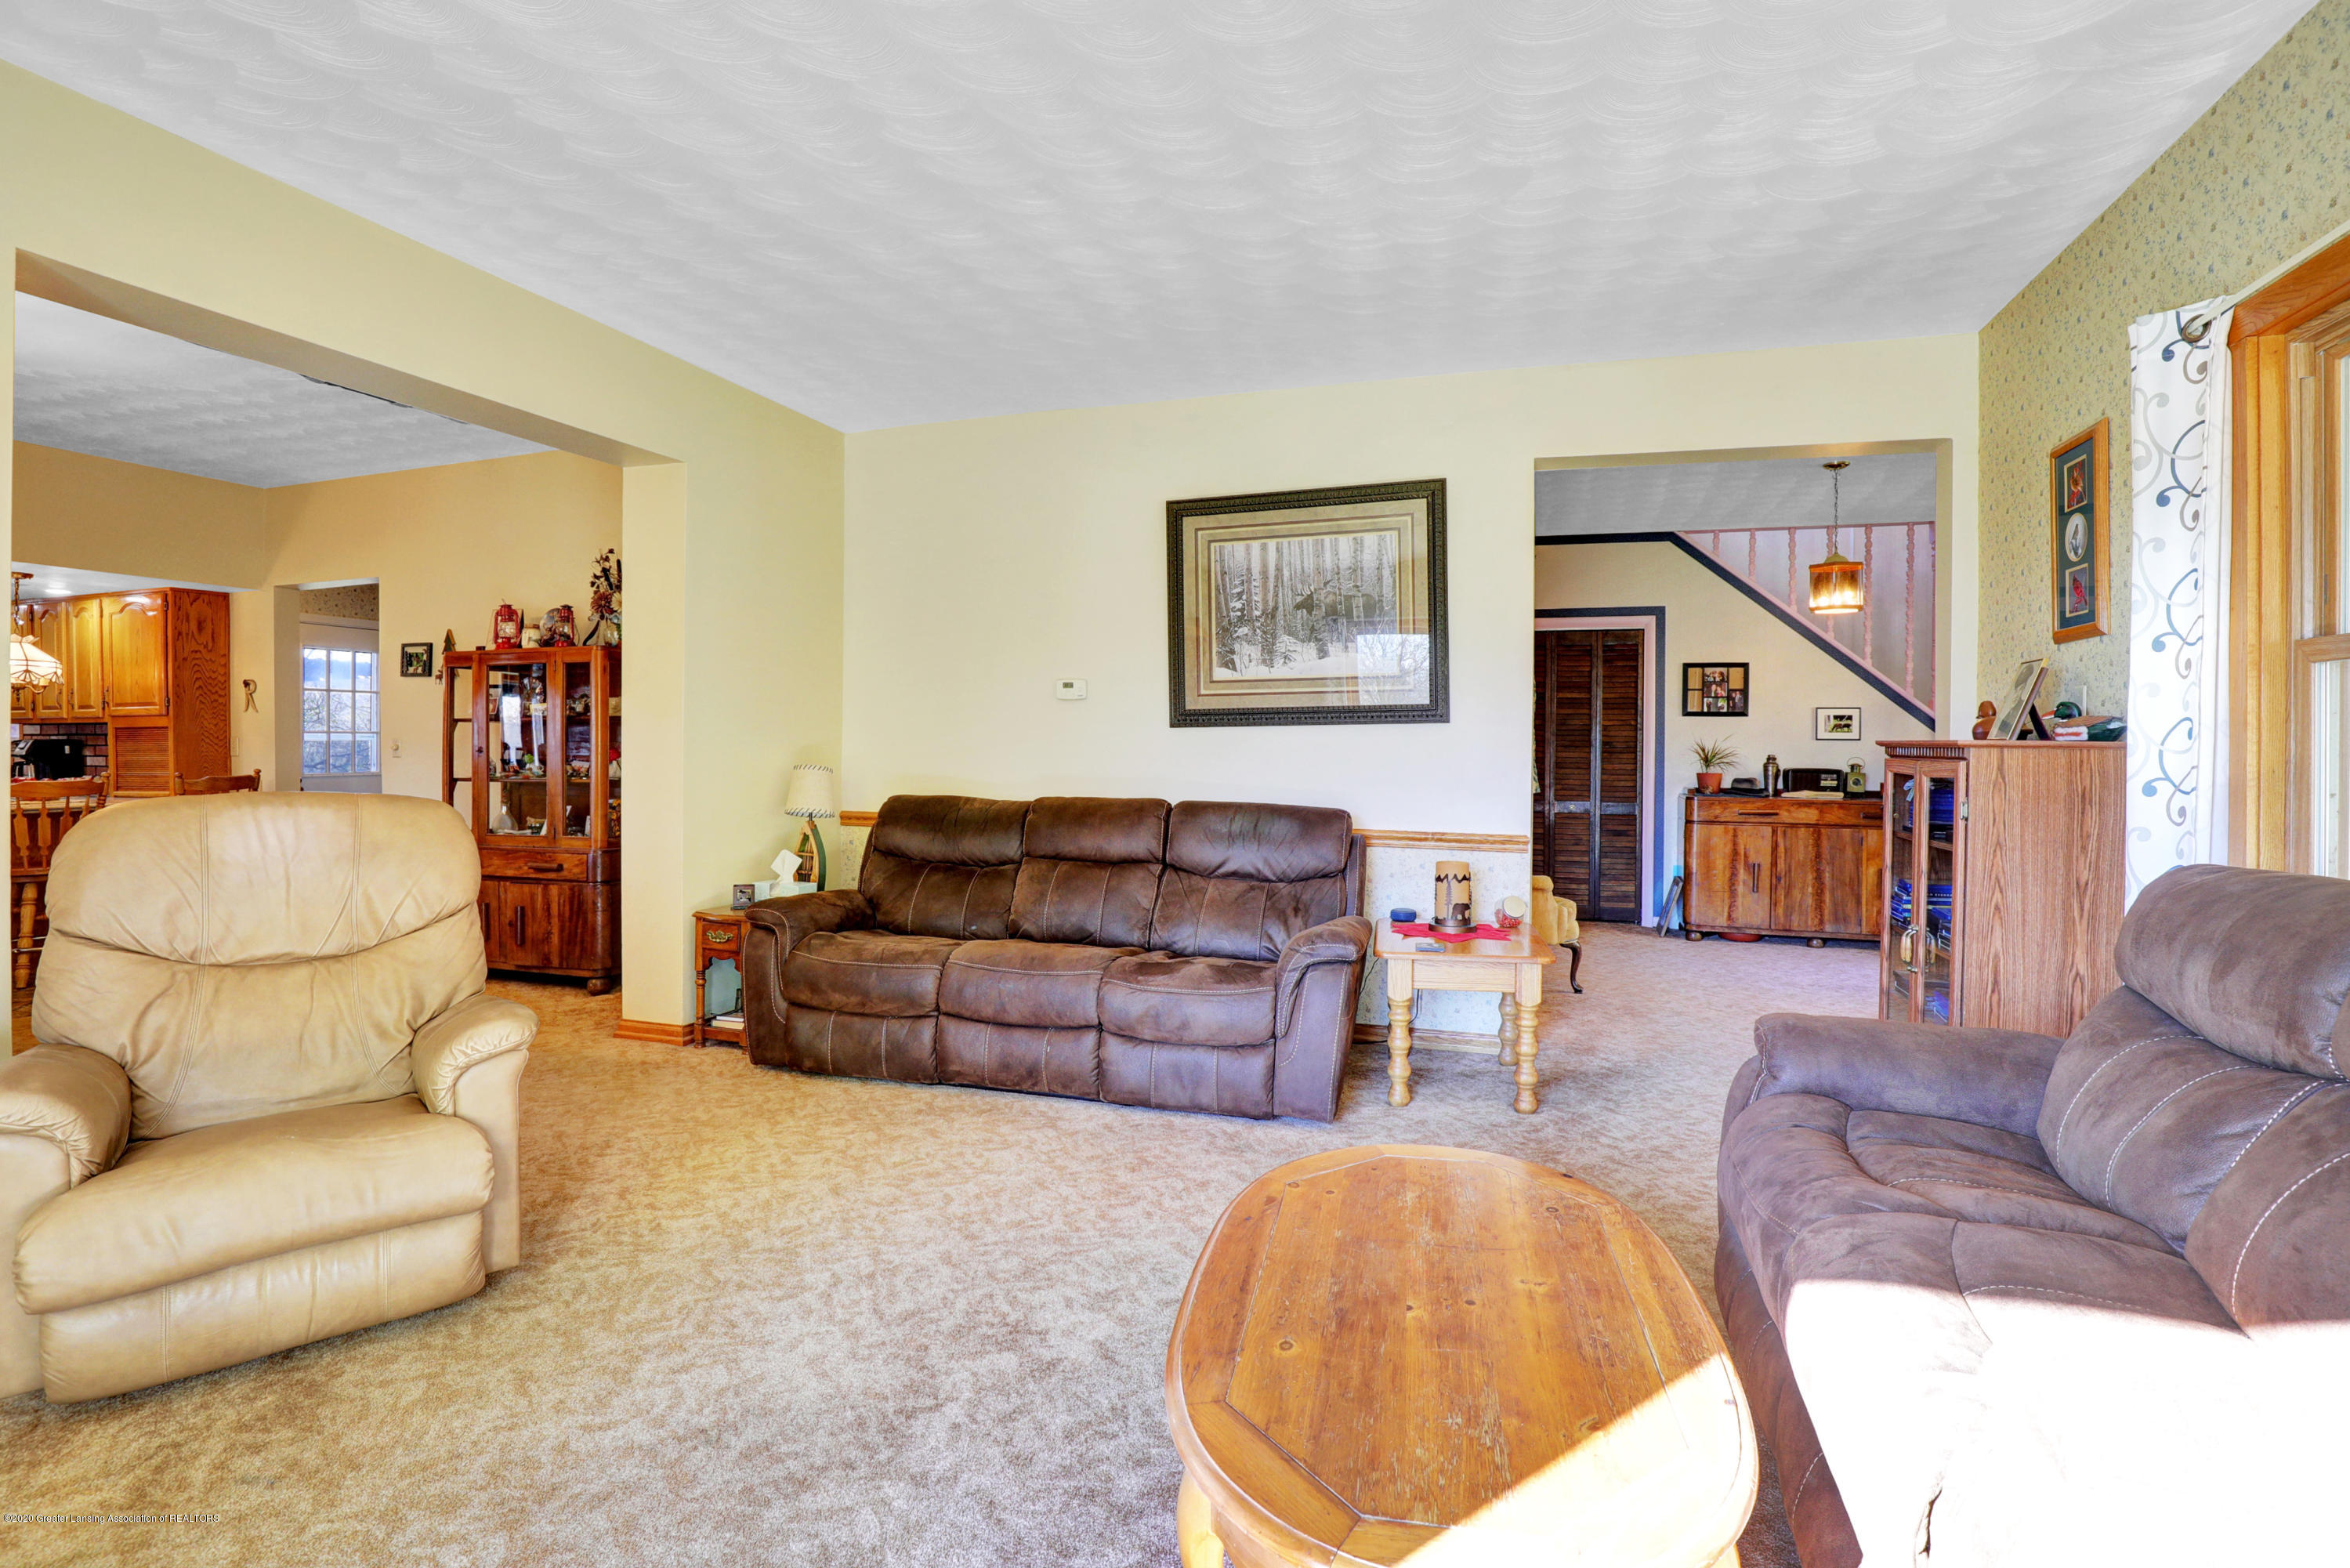 3882 Gale Rd - 9I3A4790 - 15